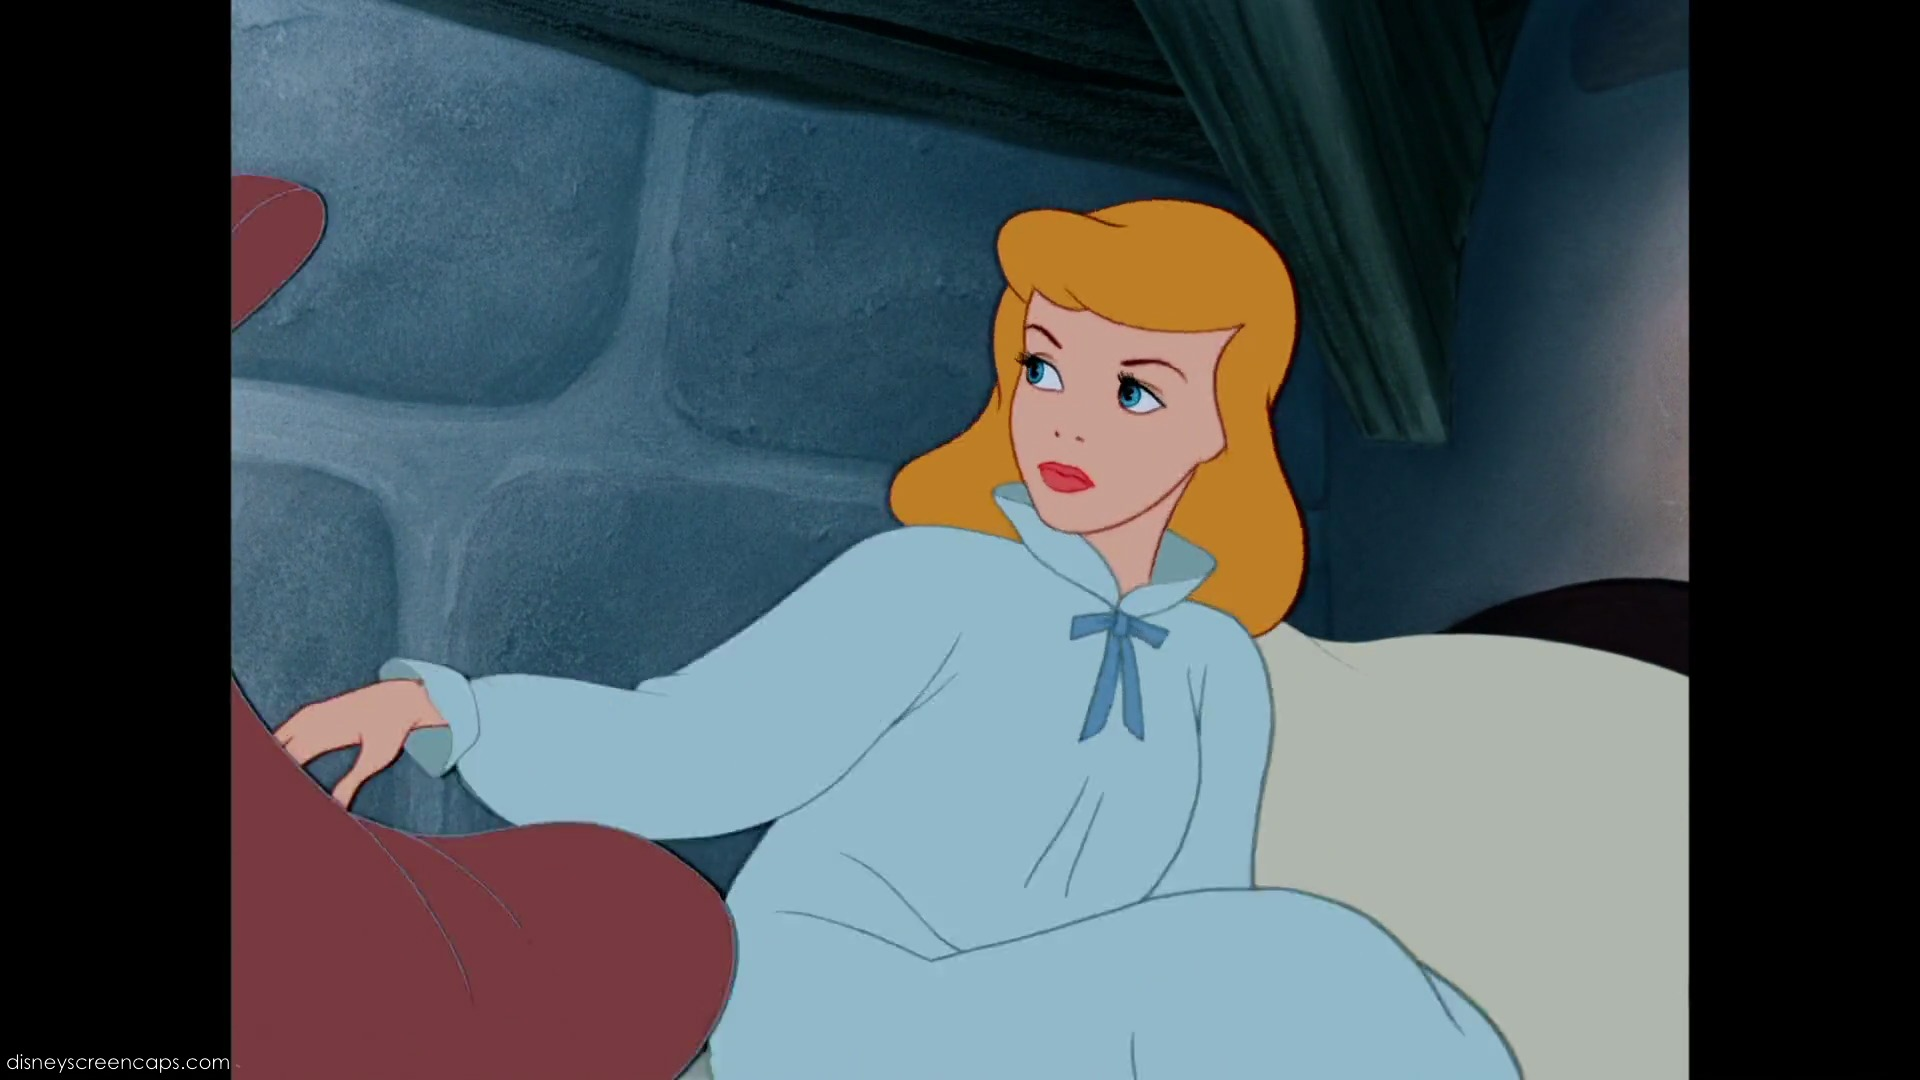 Disney Princess images Angry Cinderella HD wallpaper and background photos